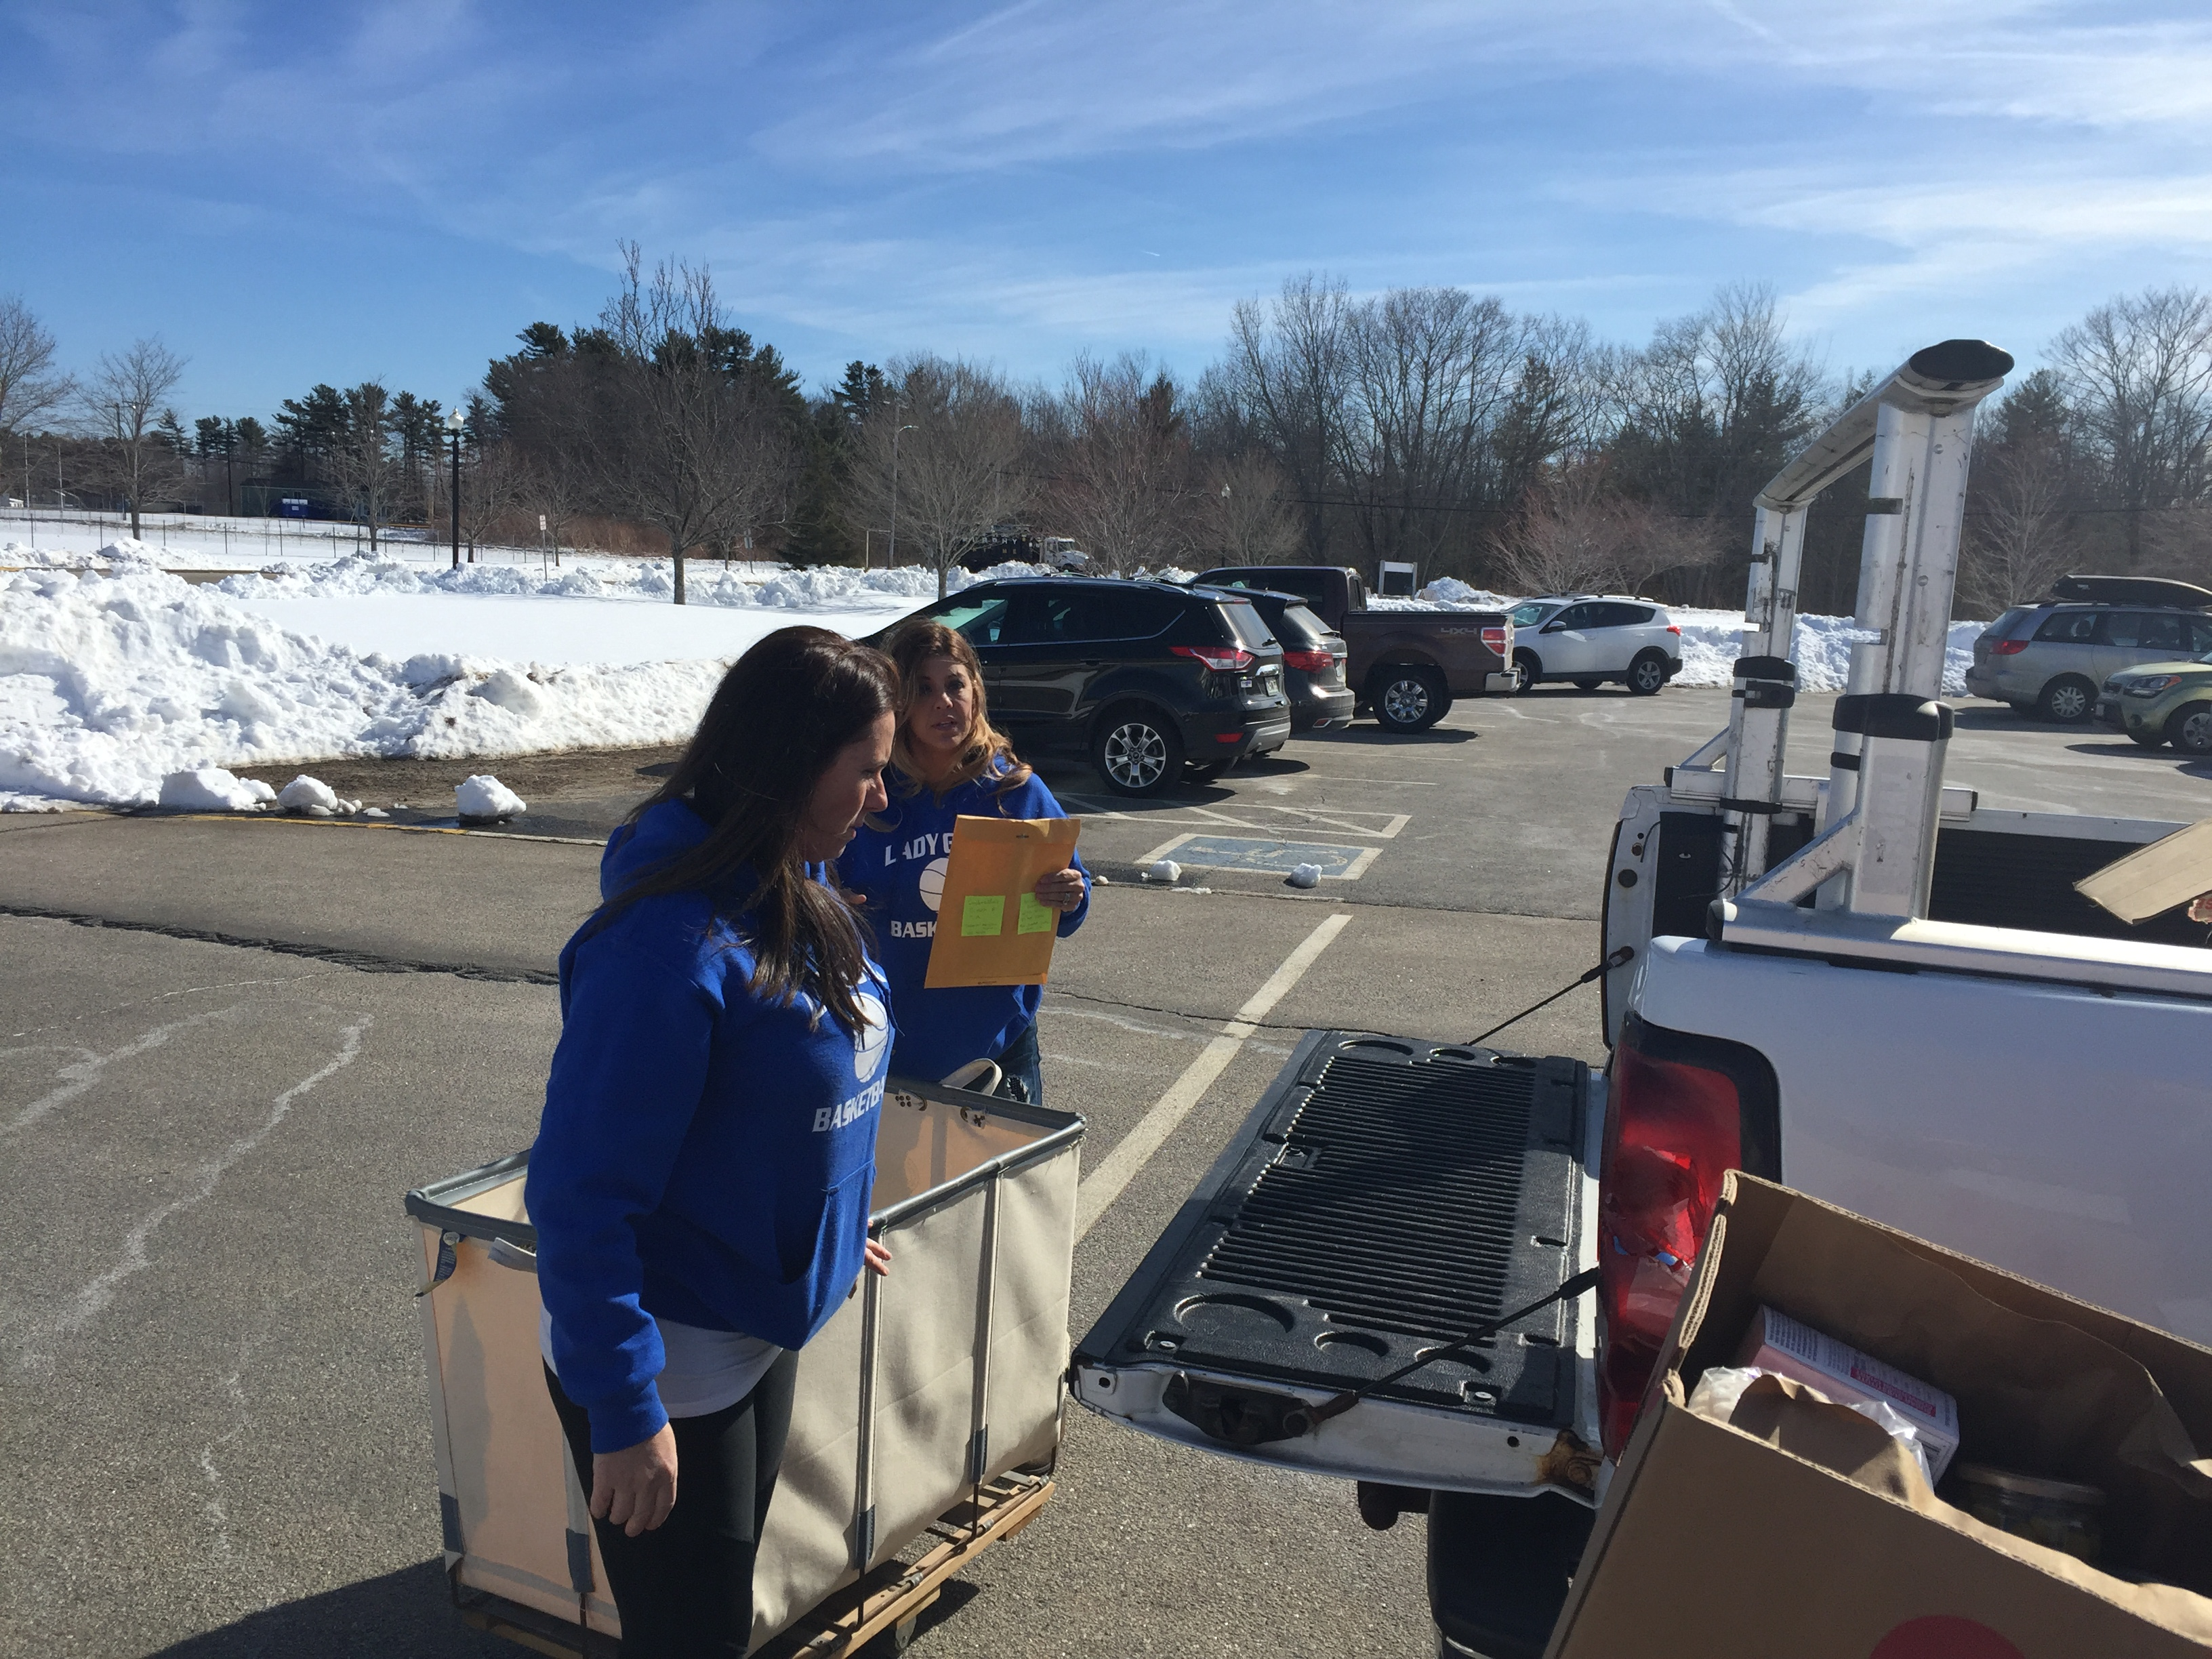 Rose Bowdoin and Erica Albair pause while loading donations for the Doucette family in a truck in front of Old Orchard Beach High School Monday afternoon.LIZ GOTTHELF/Journal Tribune